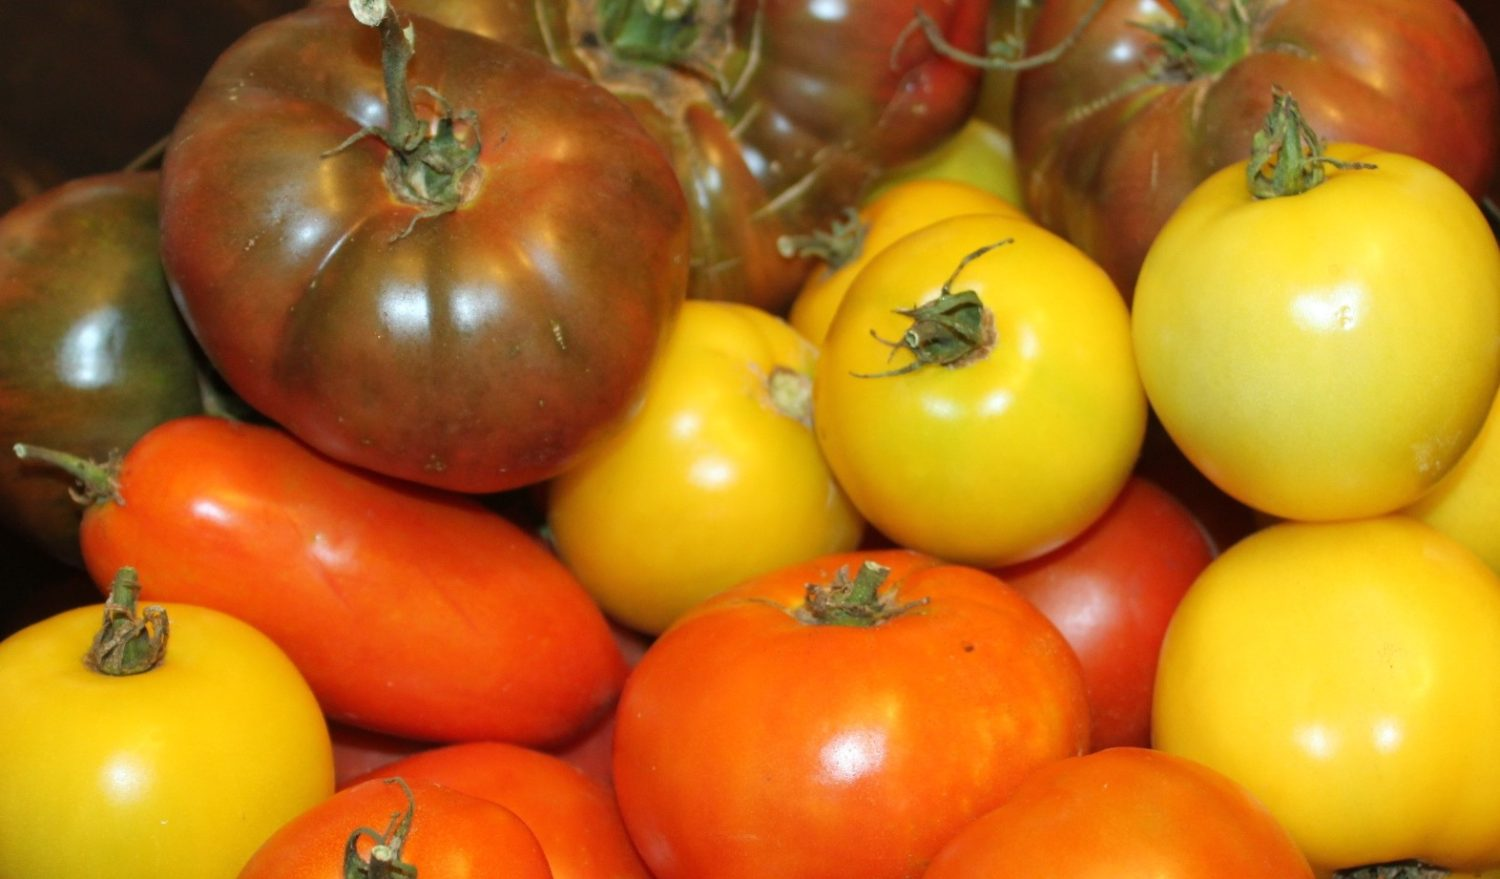 10 Amazing Tomato To Grow This Year – Heirloom Tomatoes Rock!